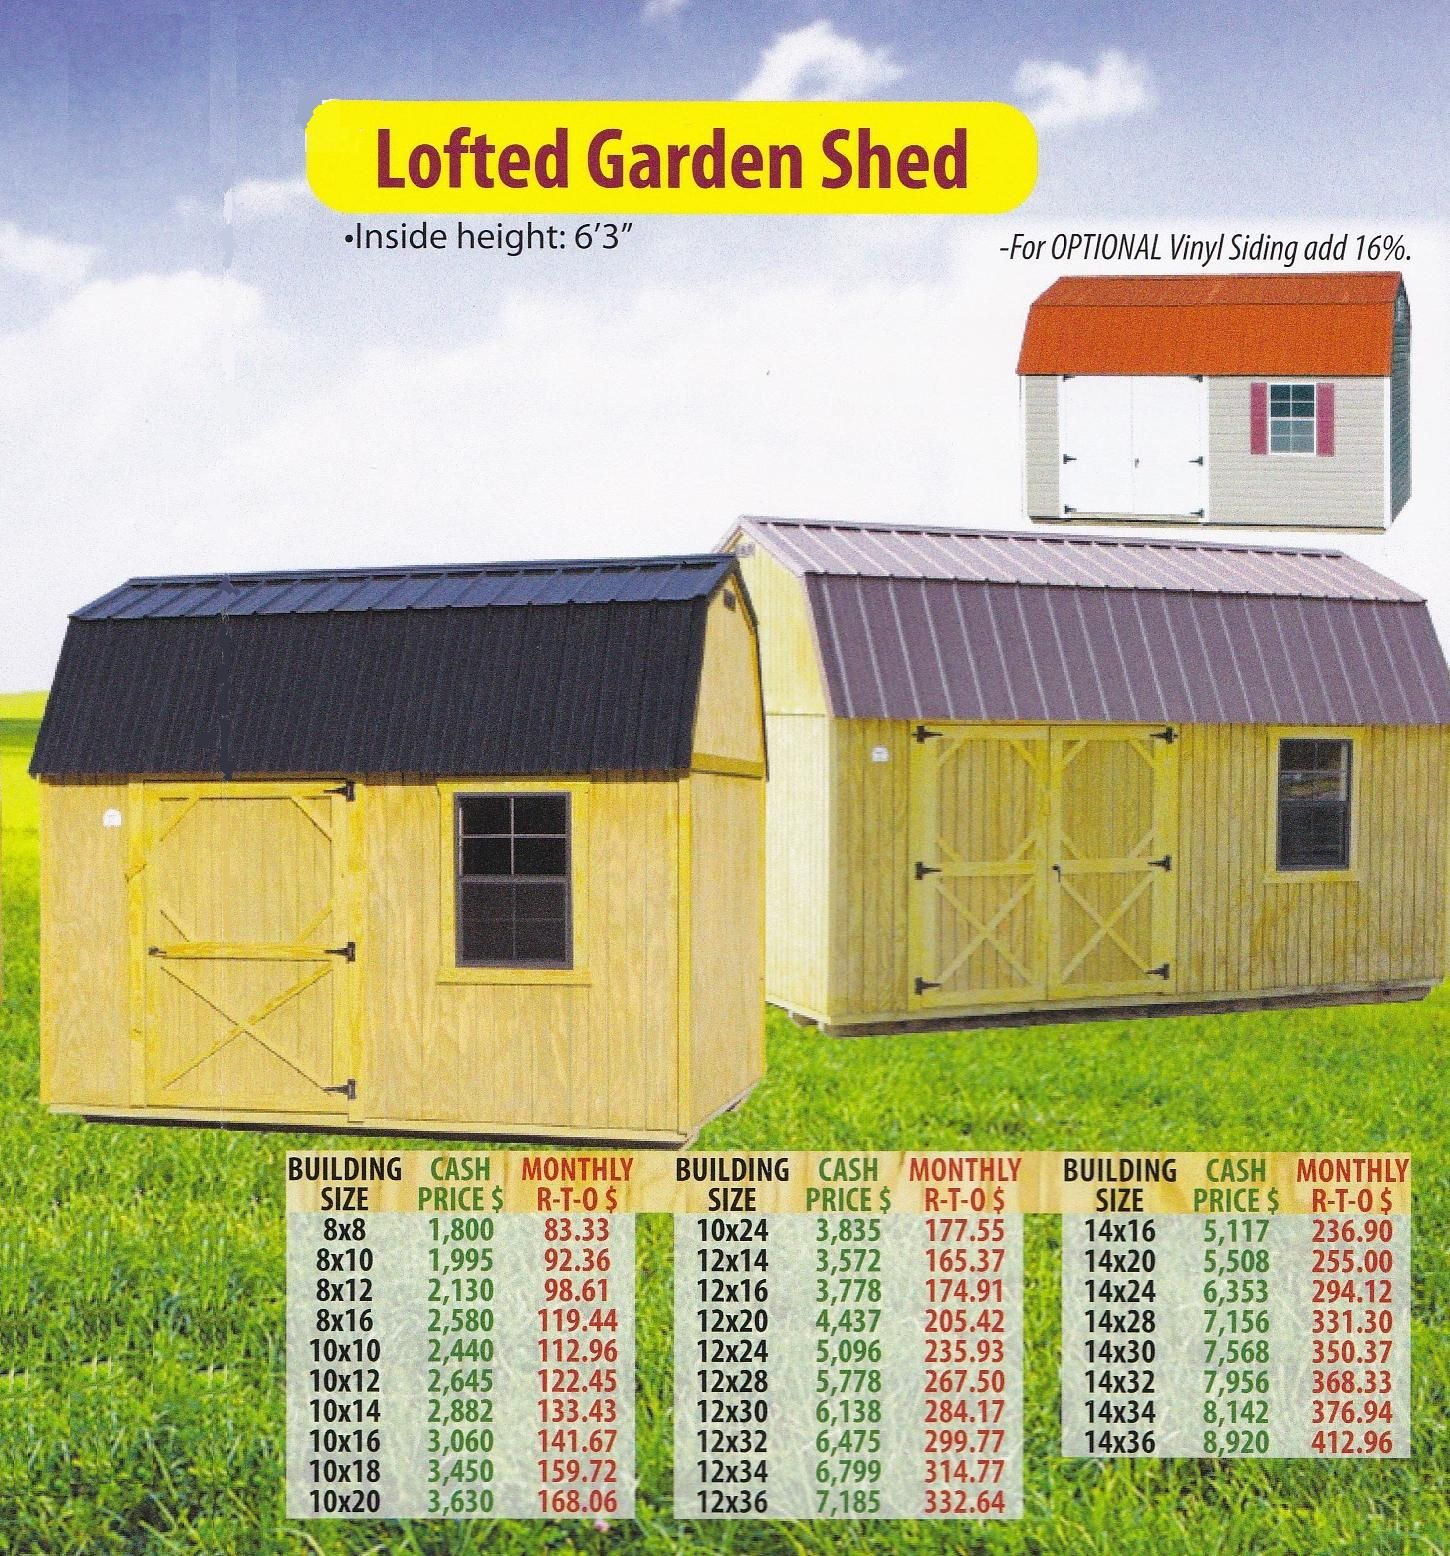 Lofted Garden Shed Vinyl Siding Built In Storage Shed